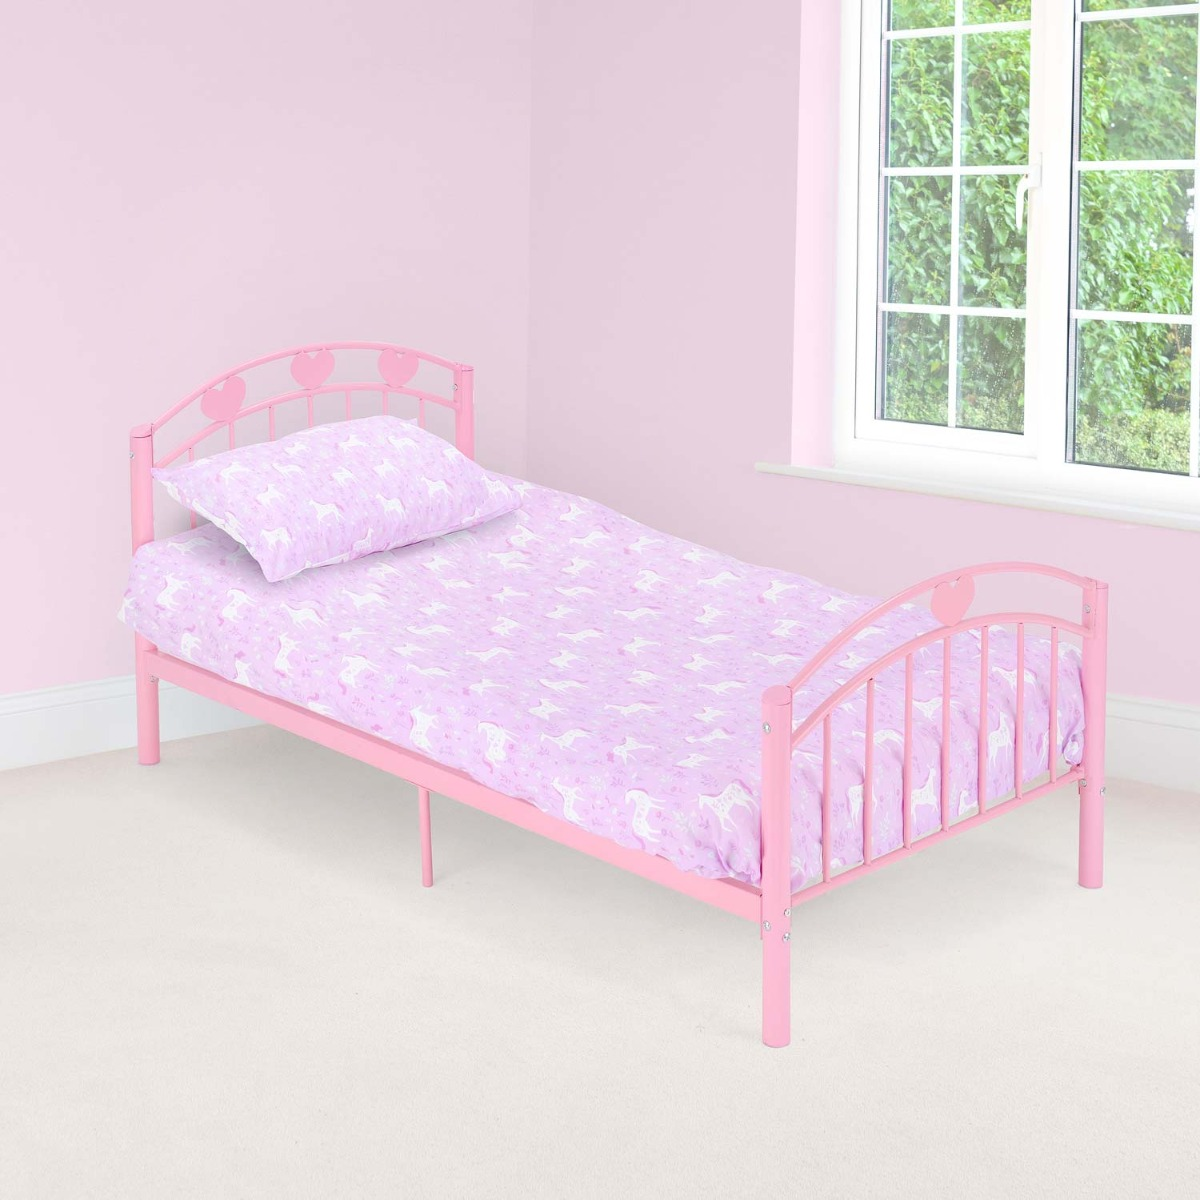 Image of Christow Pink Toddler Bed Frame